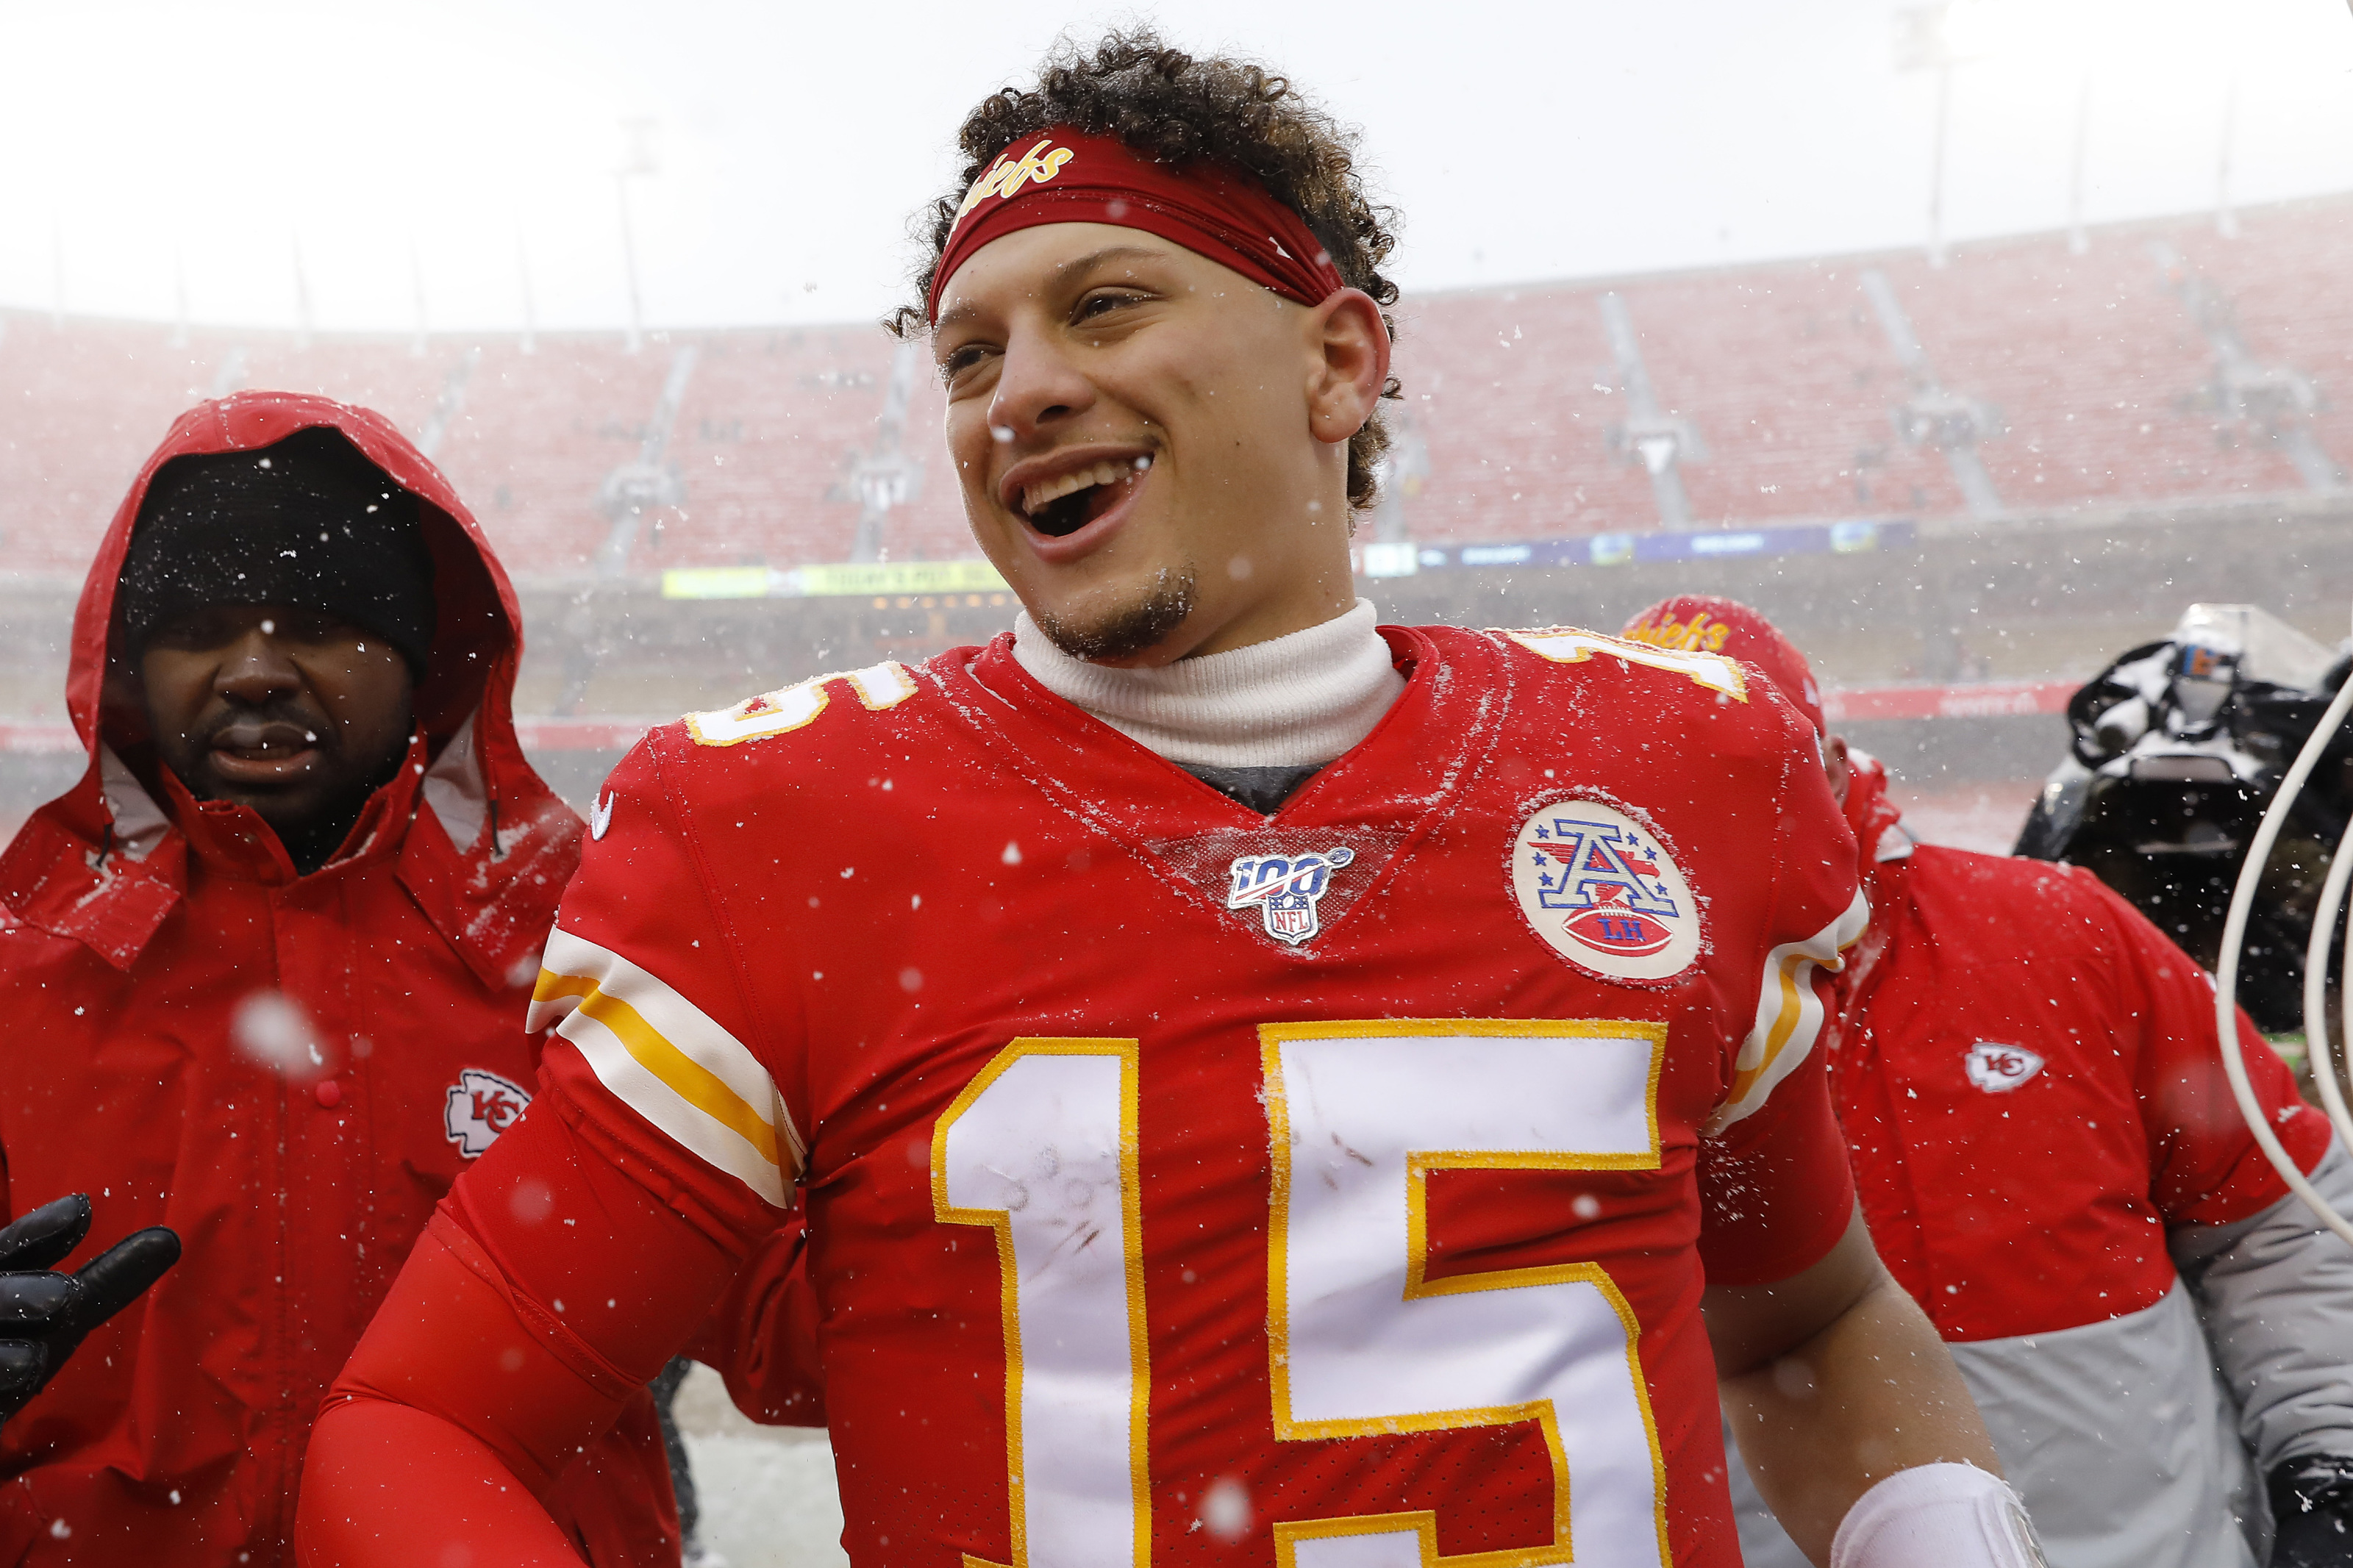 Patrick Mahomes extension expected from Chiefs after NFL Draft